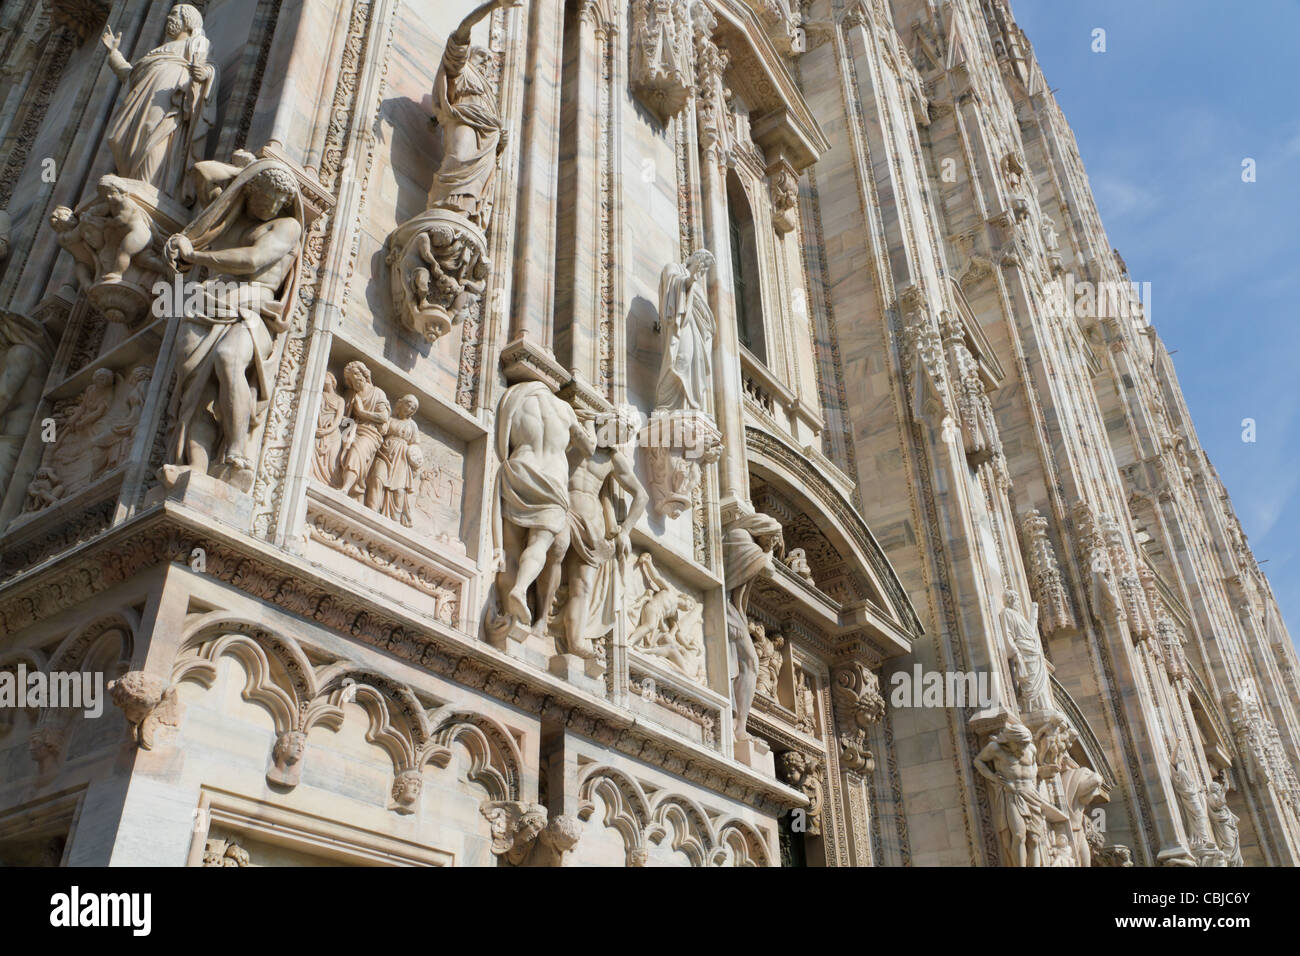 sculpted details of white marble and statues decorate the facade of cathedral duomo of Milan, Italy - Stock Image